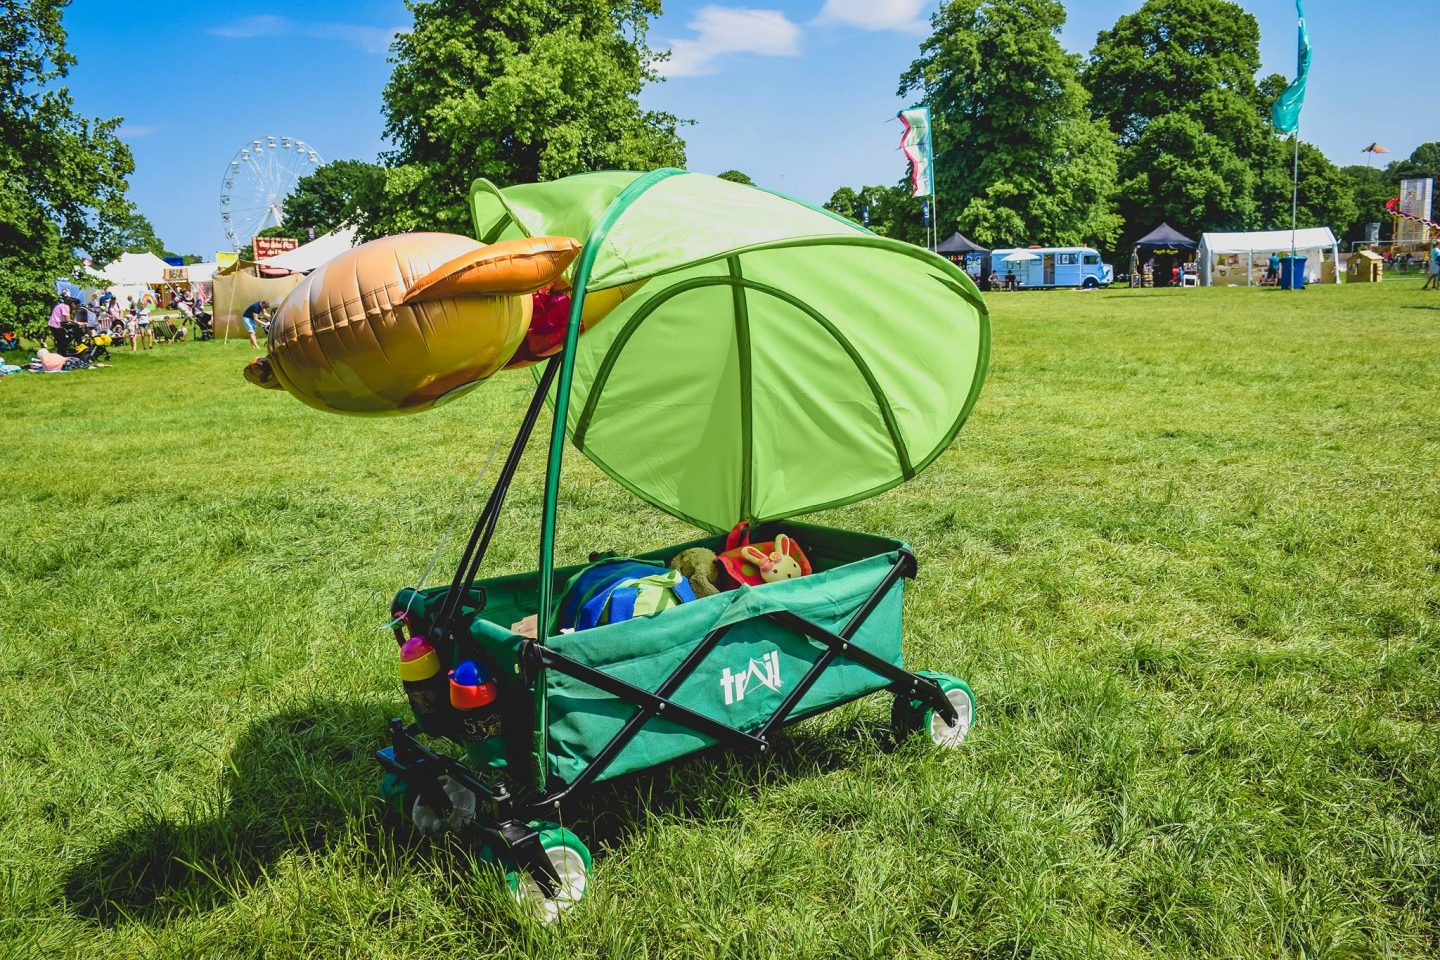 Festival wagons for kids - are they a good idea and which are the best?